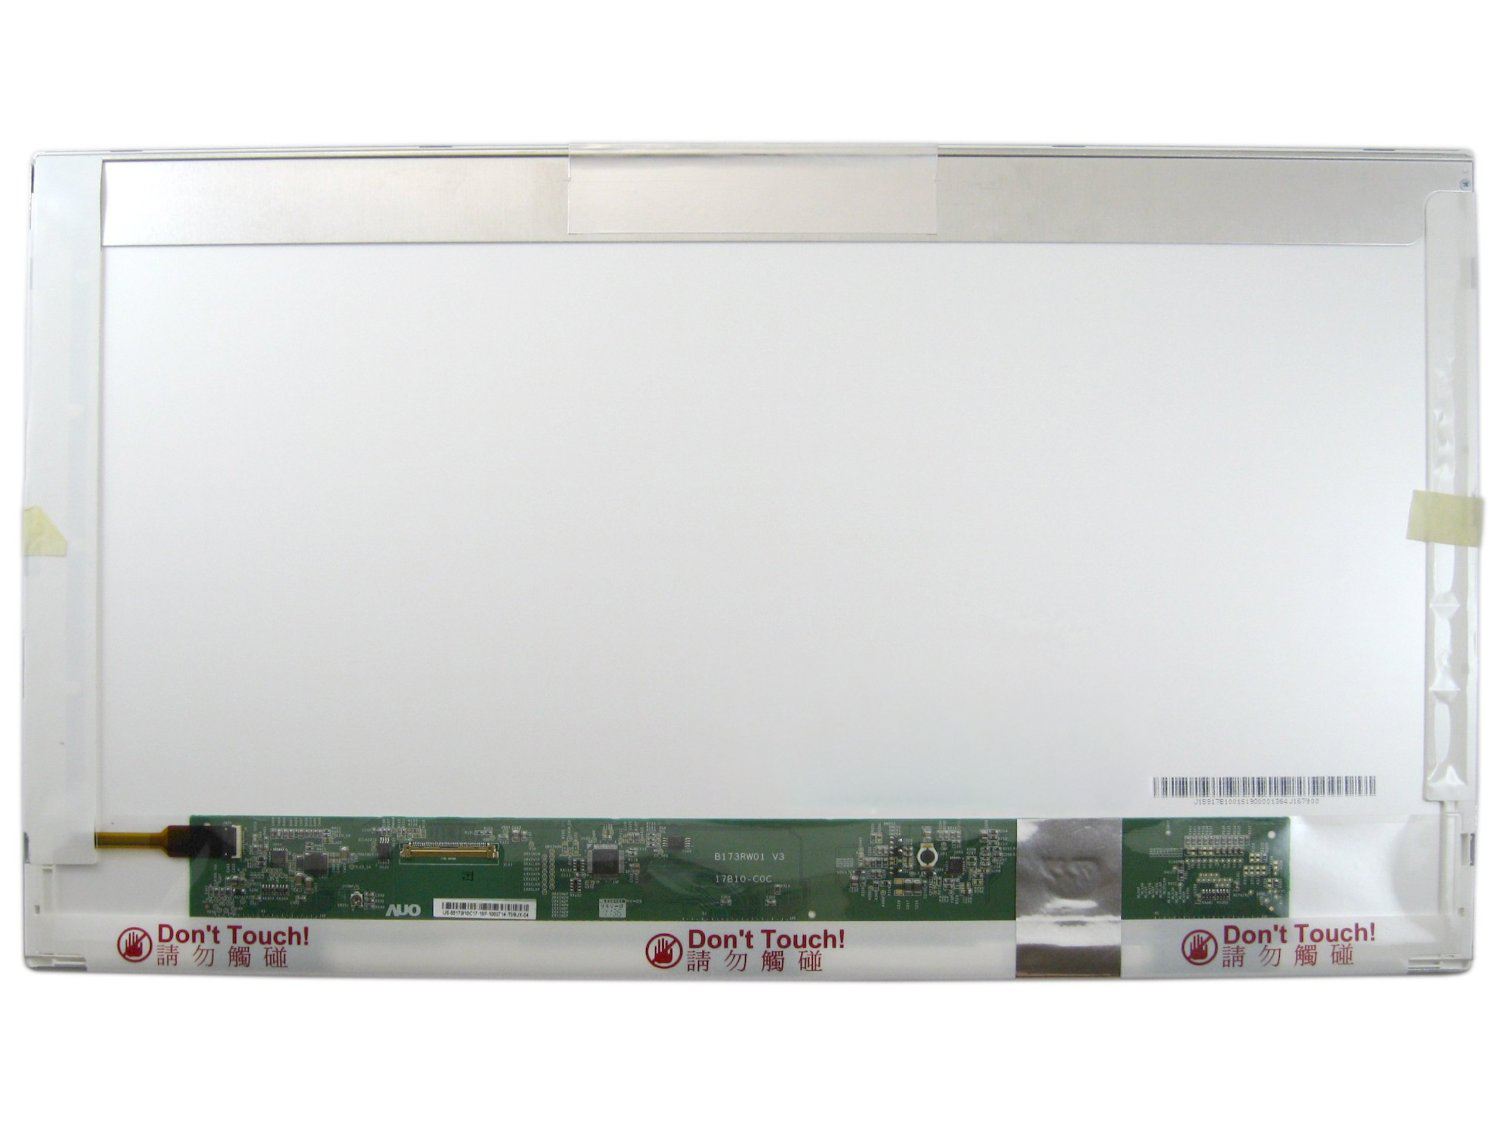 QuYing Laptop Lcd Screen for ASUS N76VZ N76VZ-DS71 N76VZ-V4G N76VZ-QH71 N76VZ-QB71 N76VZ-DH71(17.3 inch, 1600x900, Thick) quying laptop lcd screen for hp elitebook 8760w 17 3 inch 1600x900 40pin